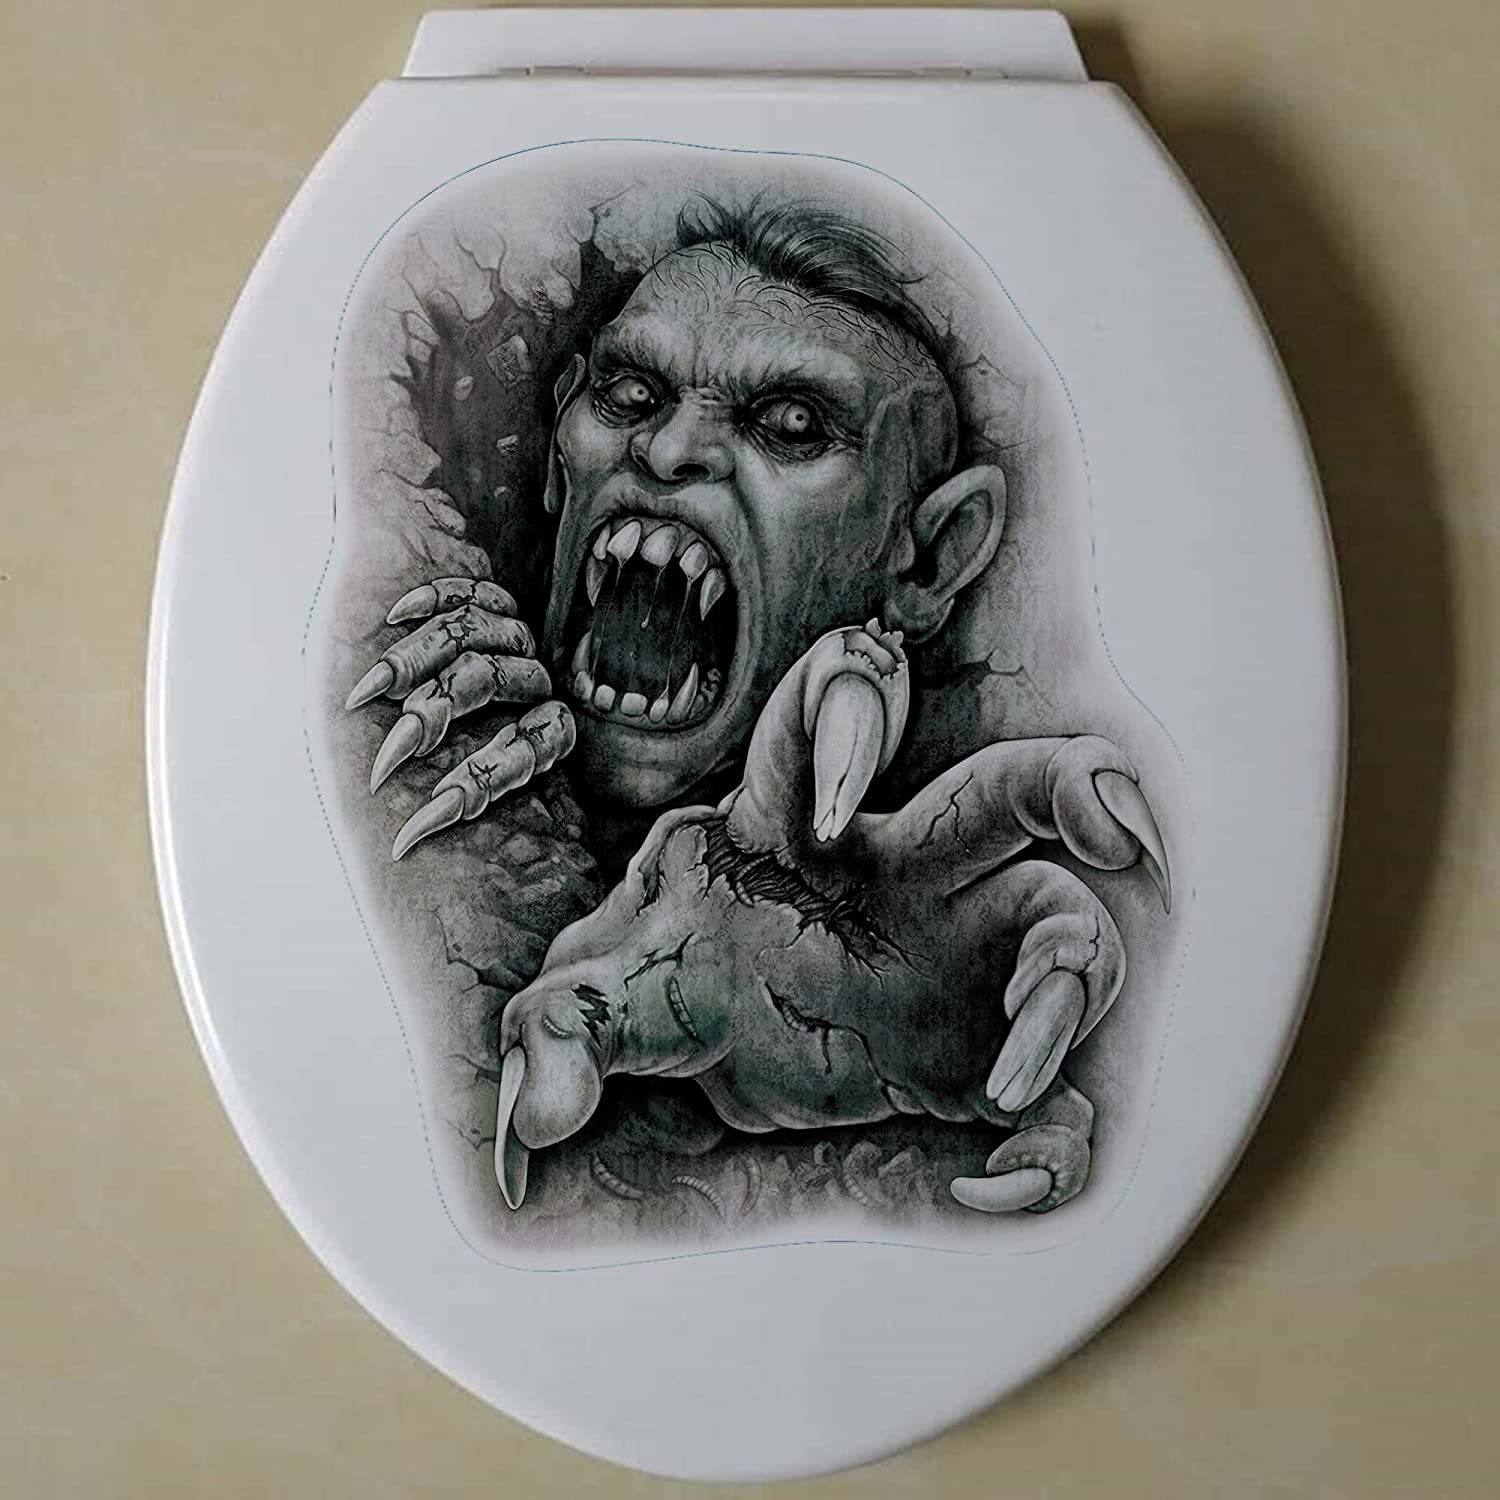 New Shipping Free Shipping Halloween Punk Rock Toilet Lid Horrible Max 58% OFF Decals Static Electricit